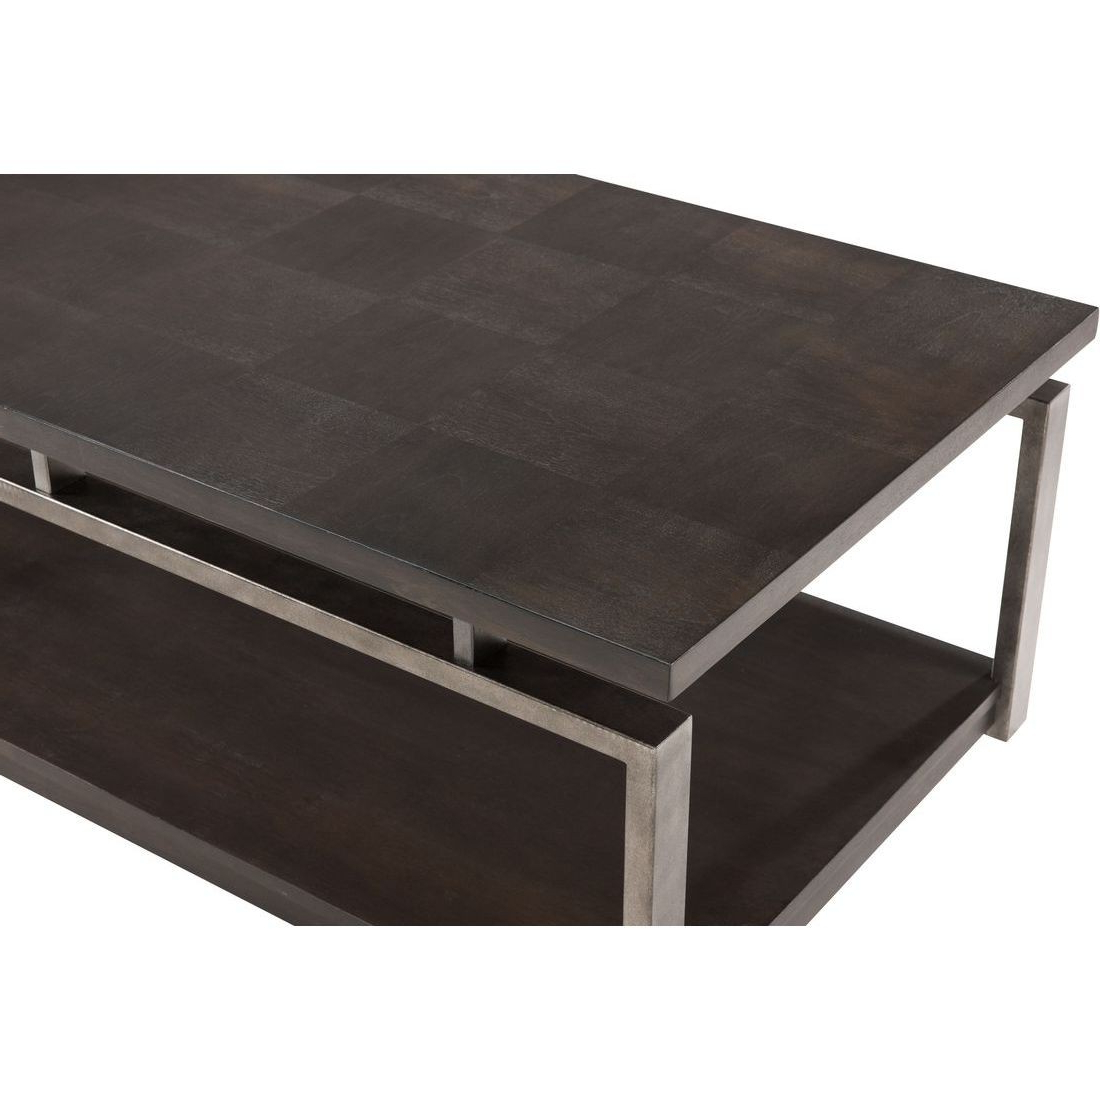 2019 Magnussen Alton Rectangular Cocktail Table In Platinum Charcoal In Alton Cocktail Tables (Gallery 7 of 20)